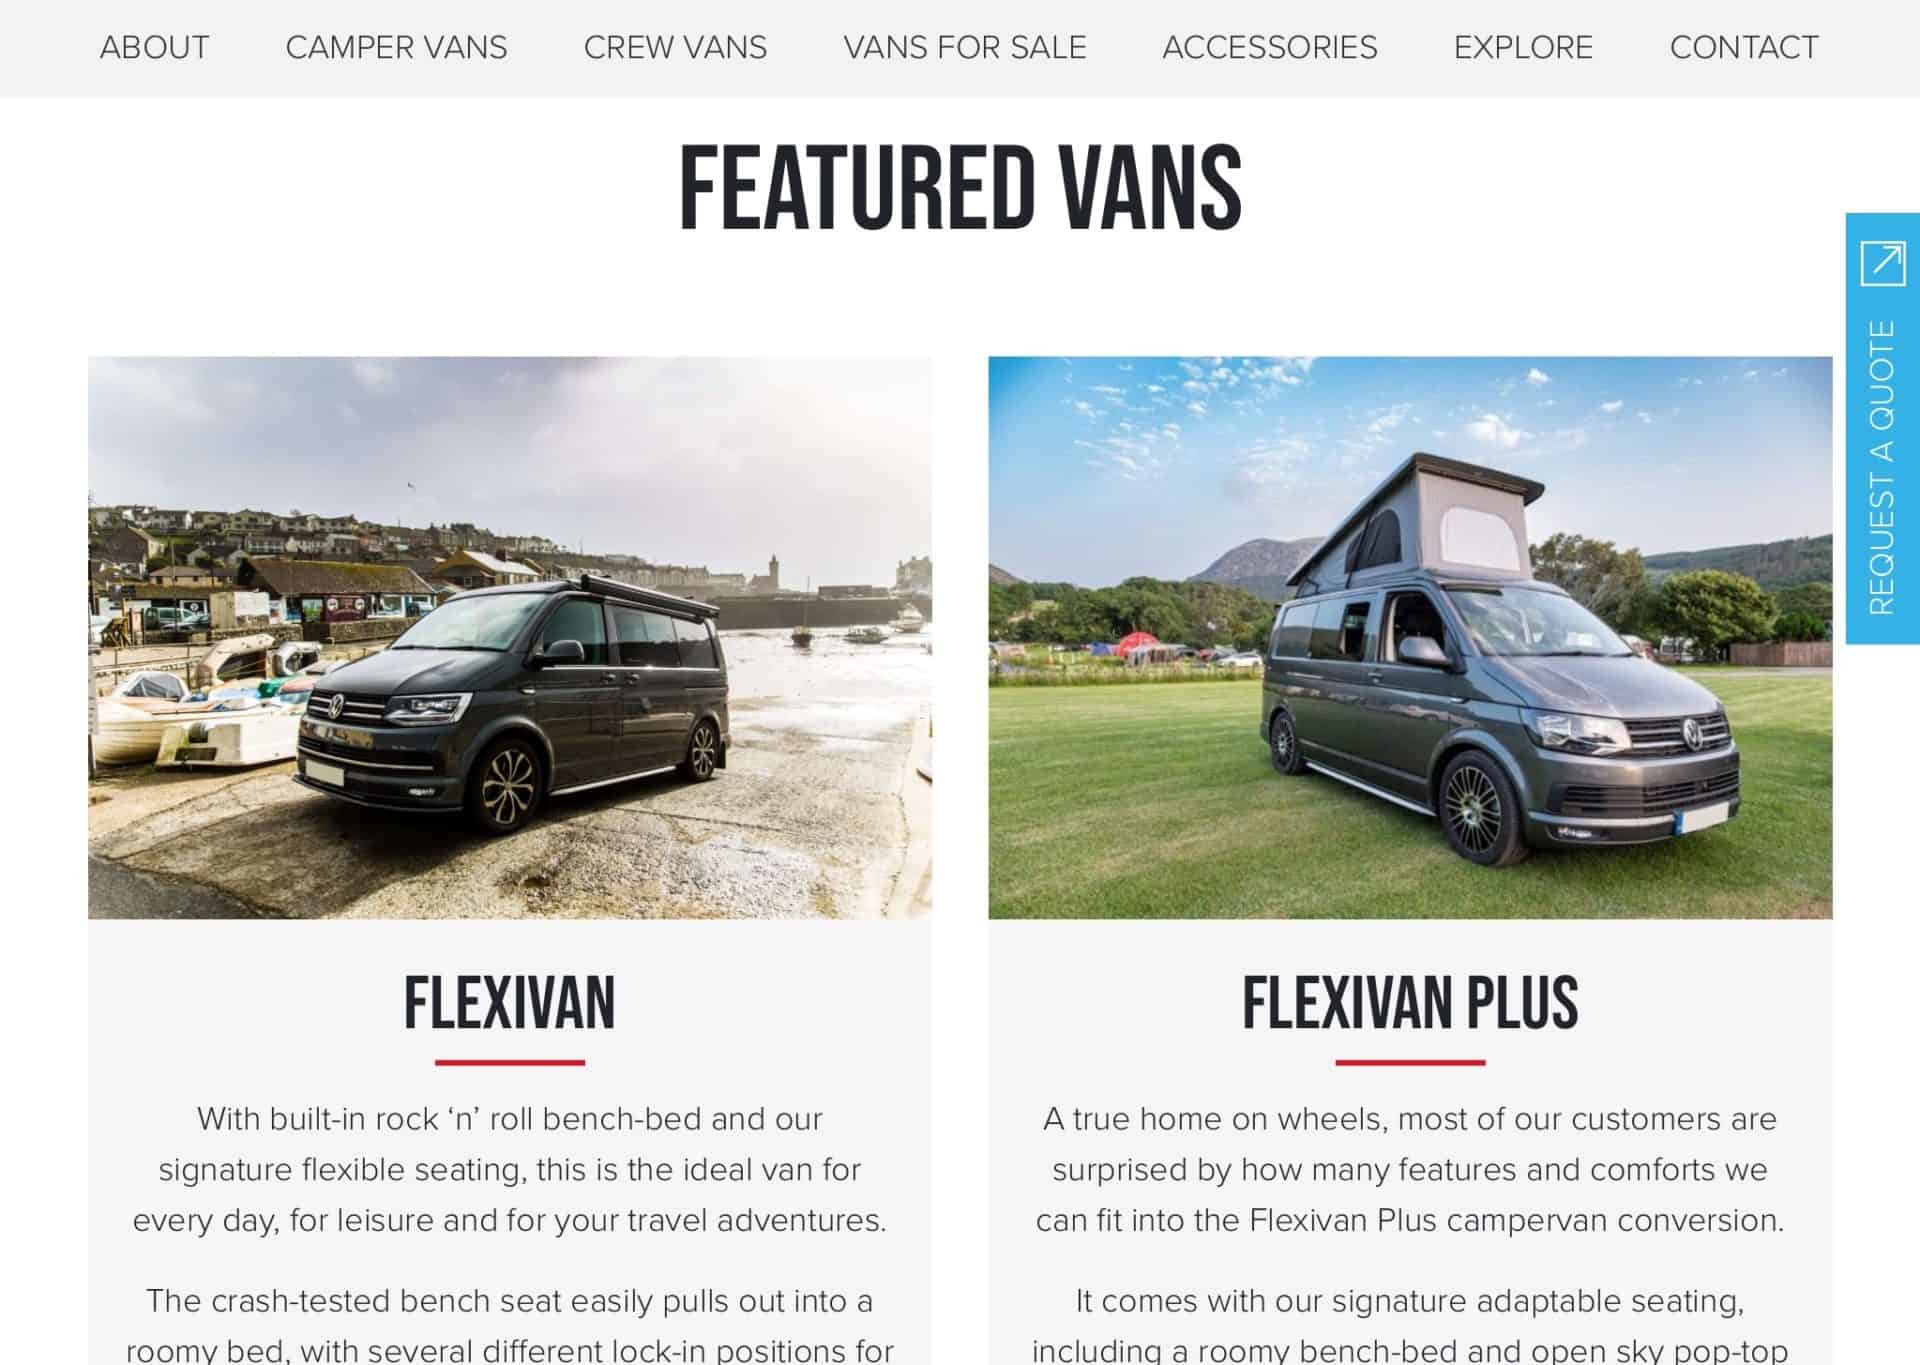 web design featured flexivan 2